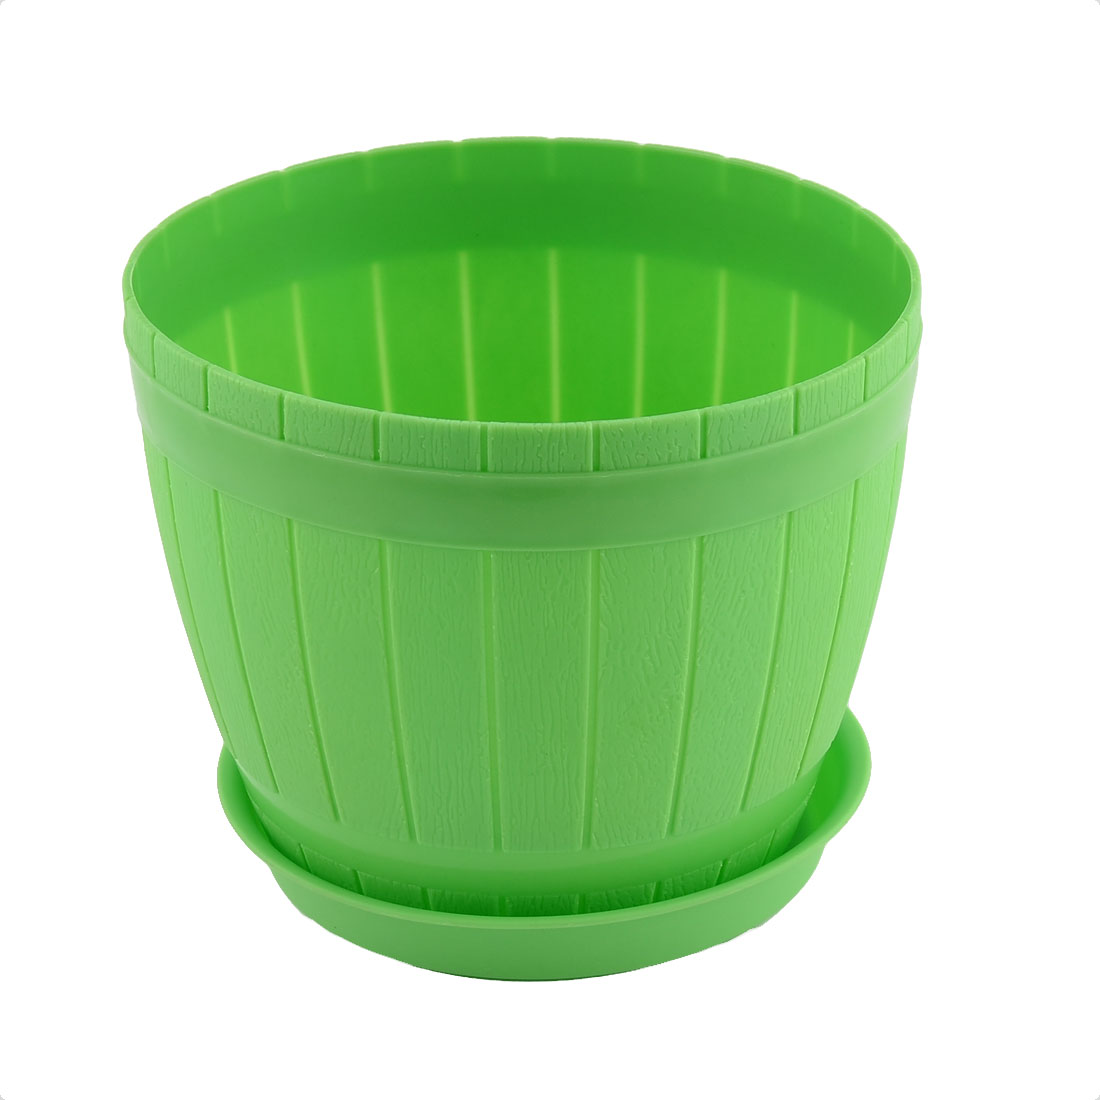 Home Office Hotel Desk Plastic Casks Shape Plant Flower Pot Holder Green w Tray